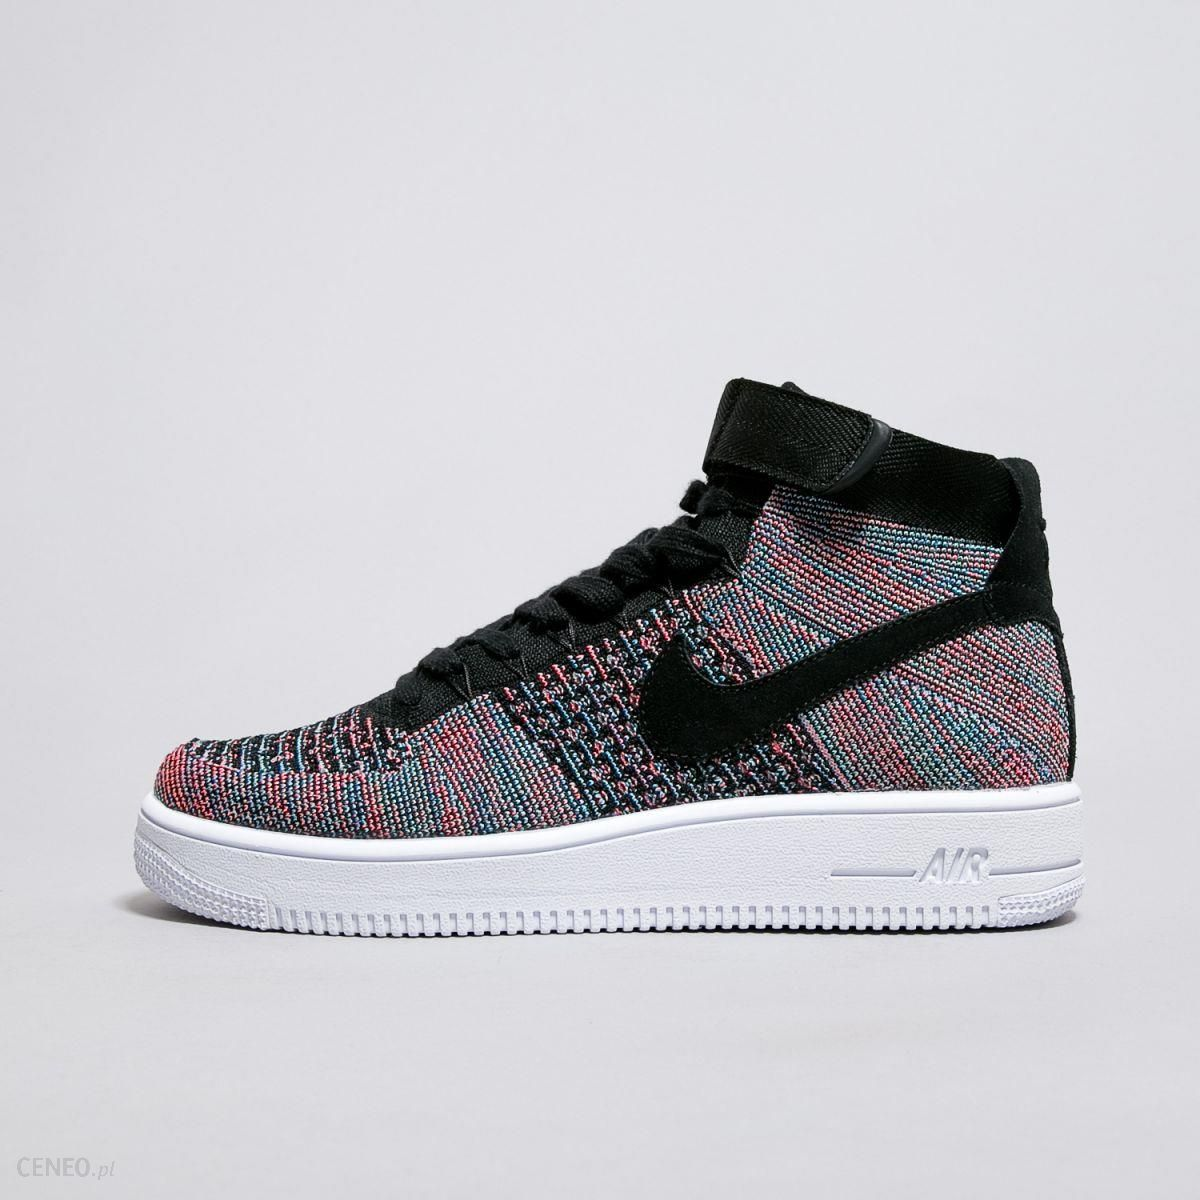 BUTY NIKE AIR FORCE 1 ULTRA FLYKNIT MID 817420 602 Ceny i